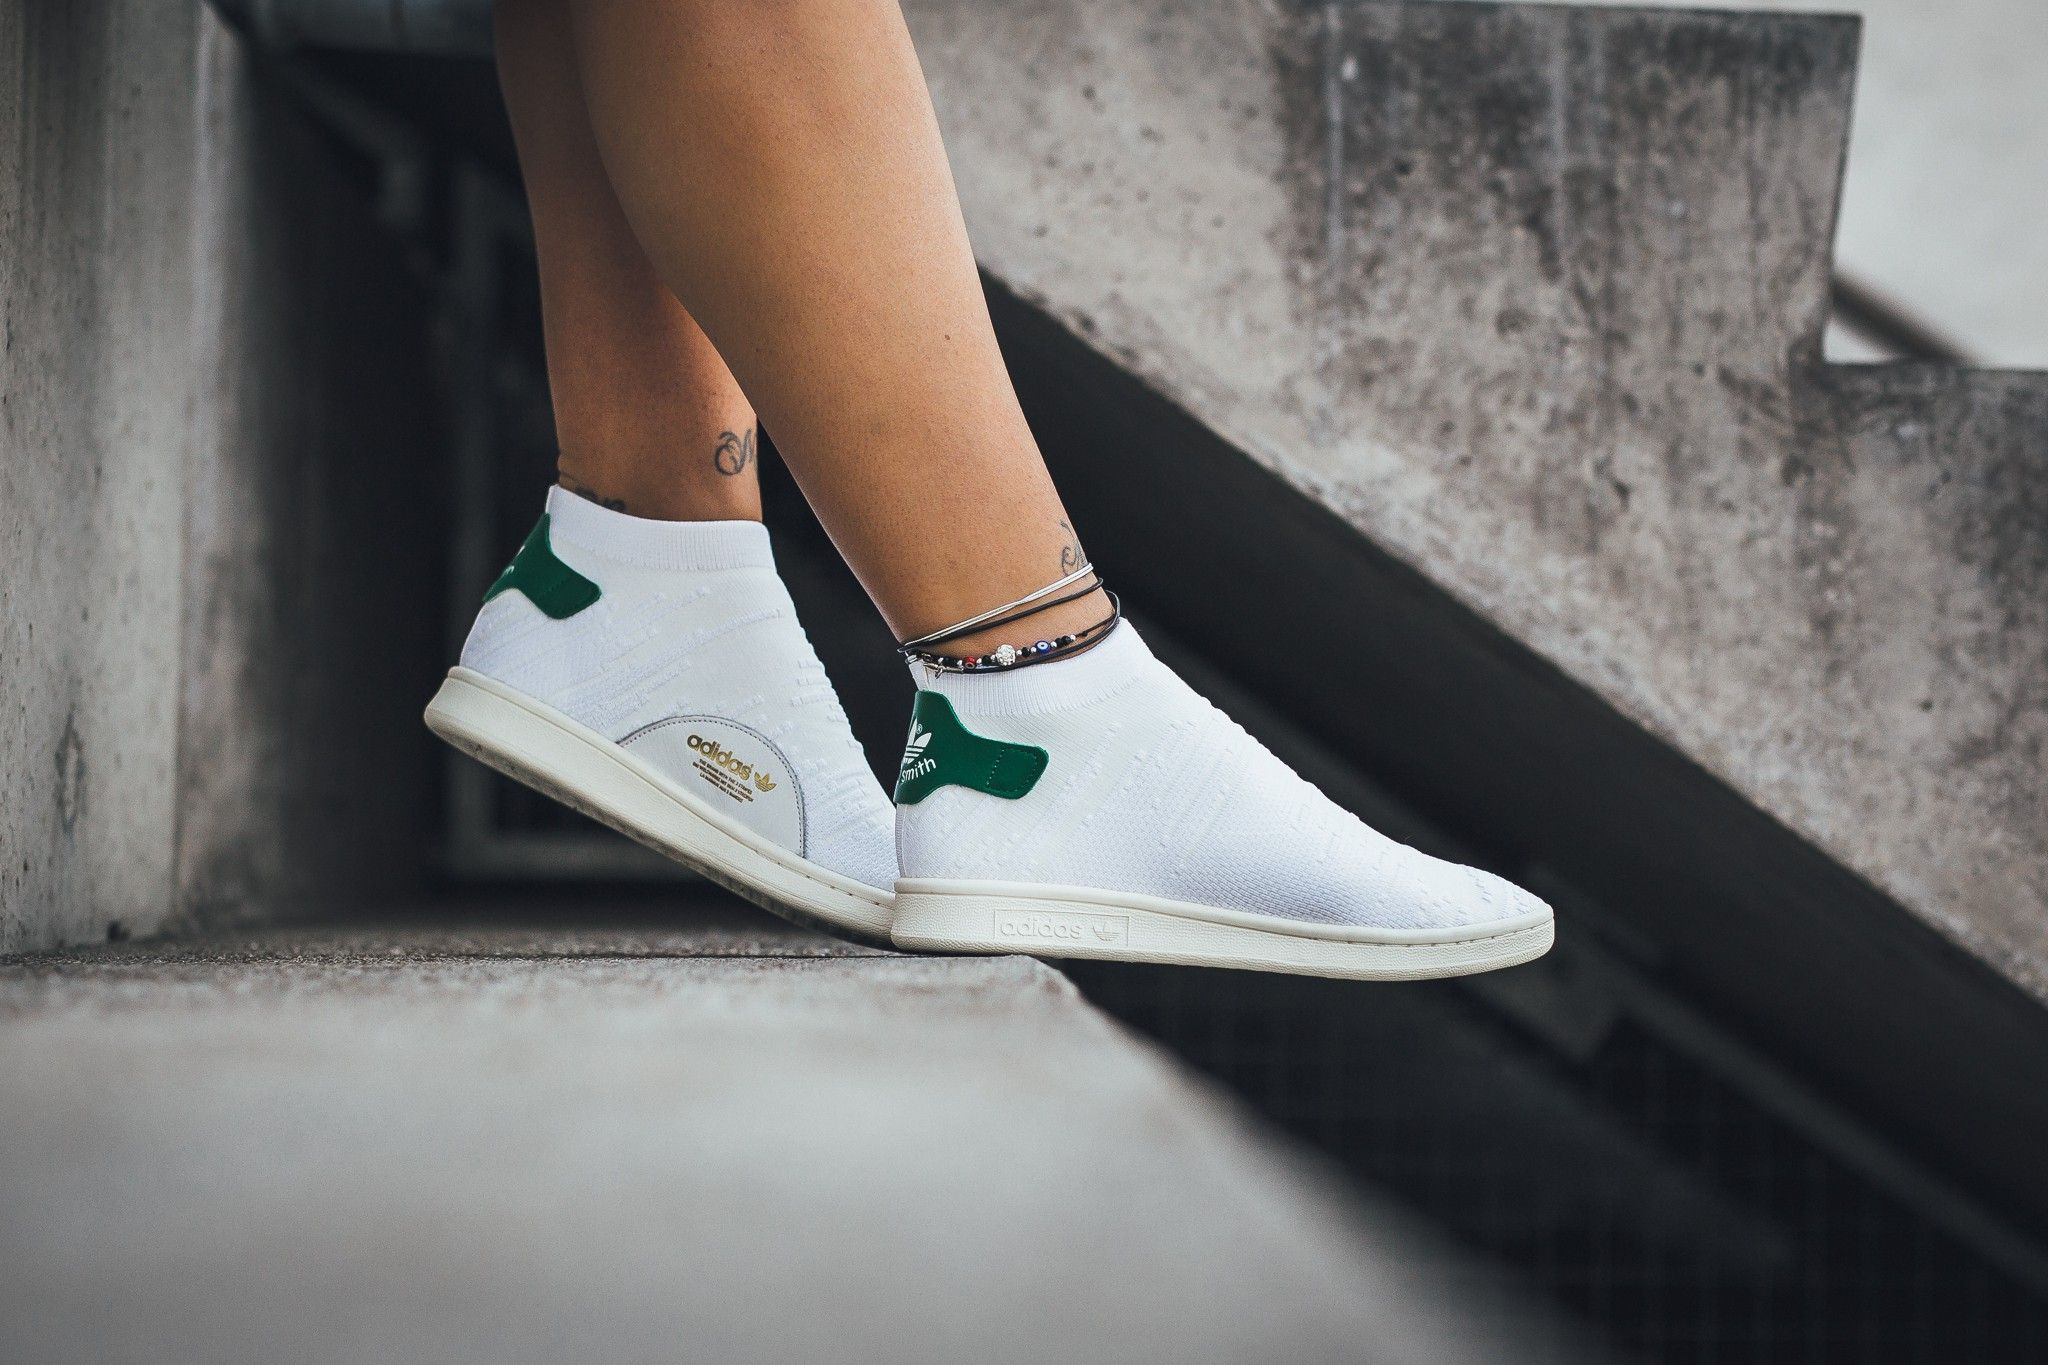 bf83c981caa27 The adidas Stan Smith Sock Primeknit in footwear white green is featured in  another look